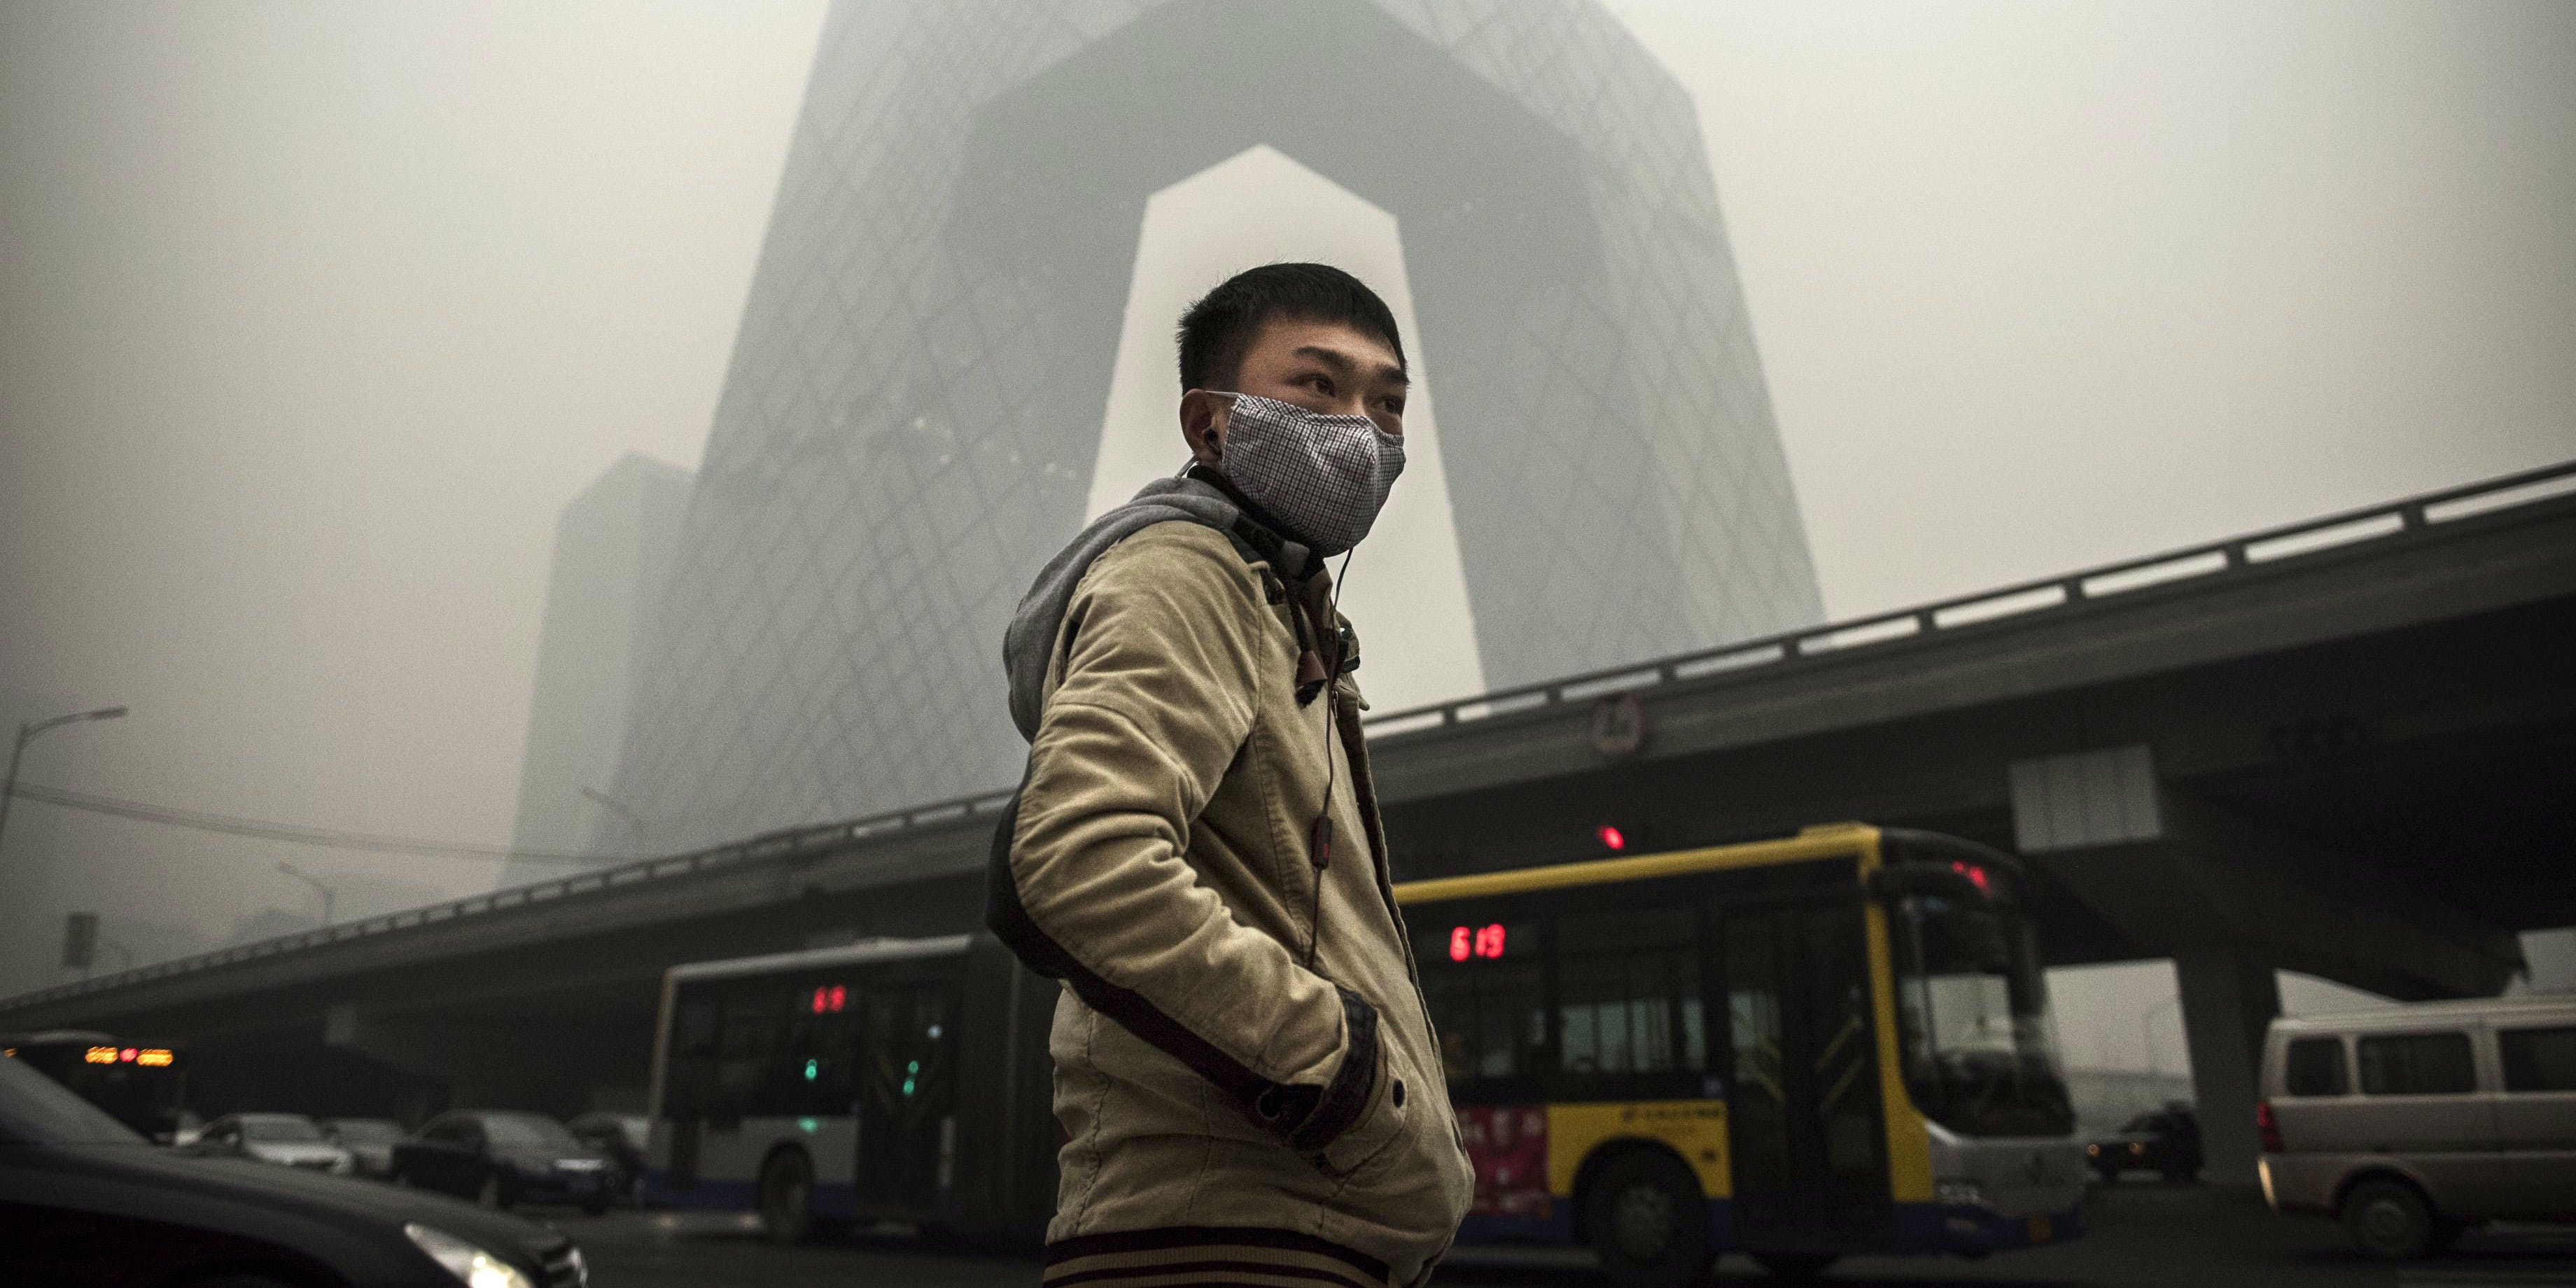 A panel at the International Conferences on Climate Change claims shifting away from fossil fuels will cause a health crisis.